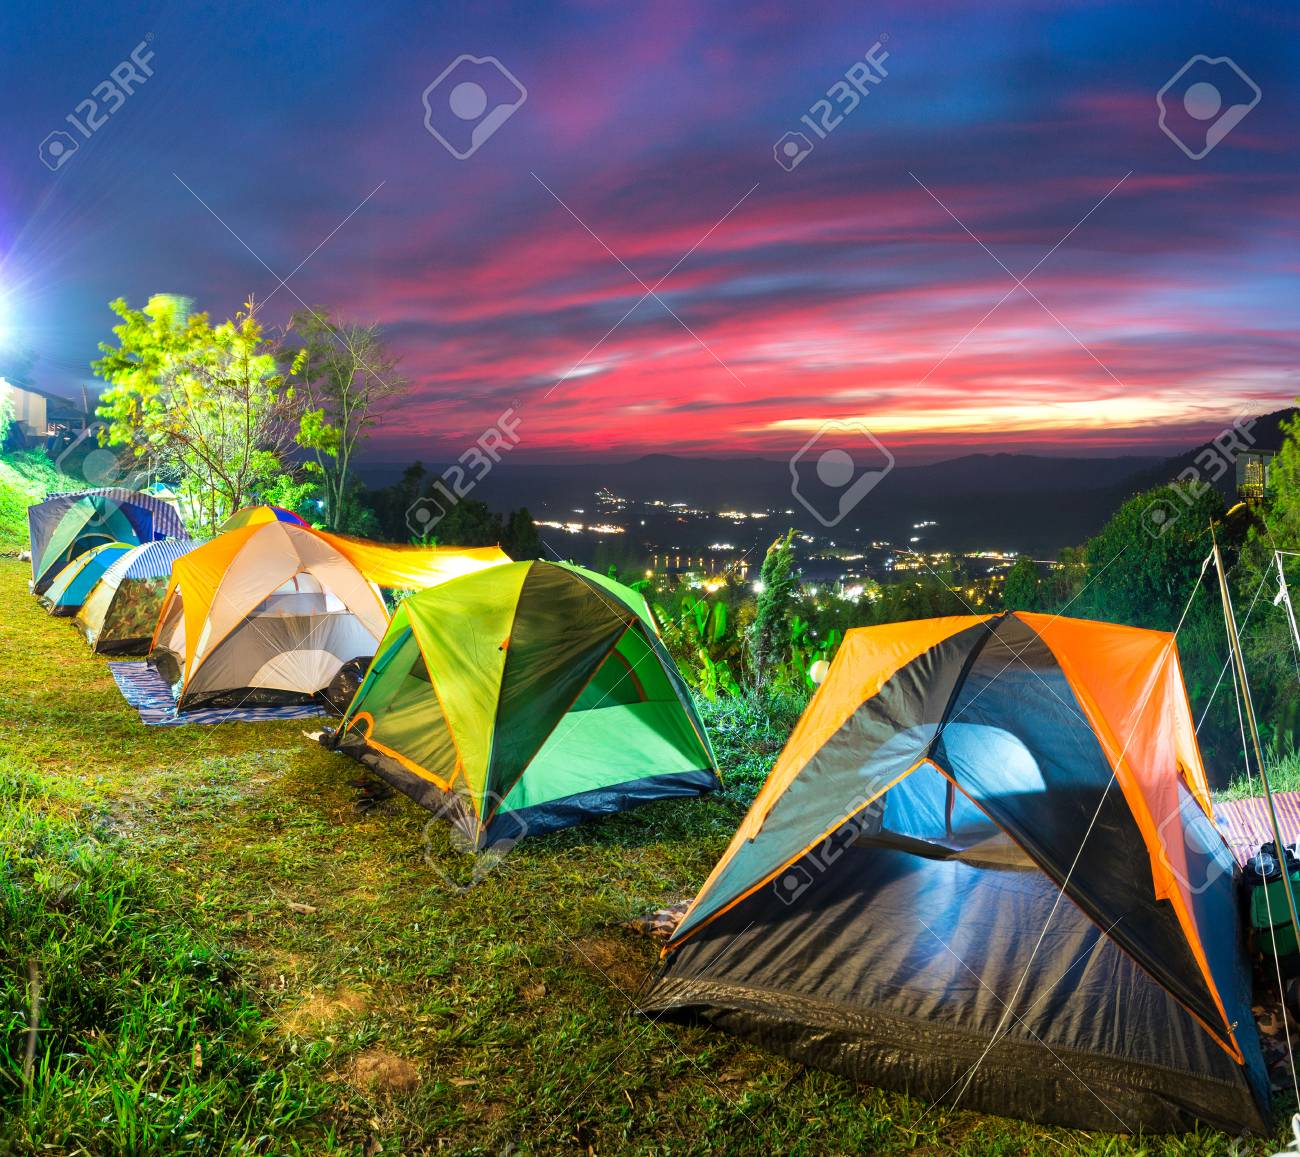 Camping And Tent On Top Of Mountain In Beautiful Sunset Time Stock Photo Picture And Royalty Free Image Image 74683111